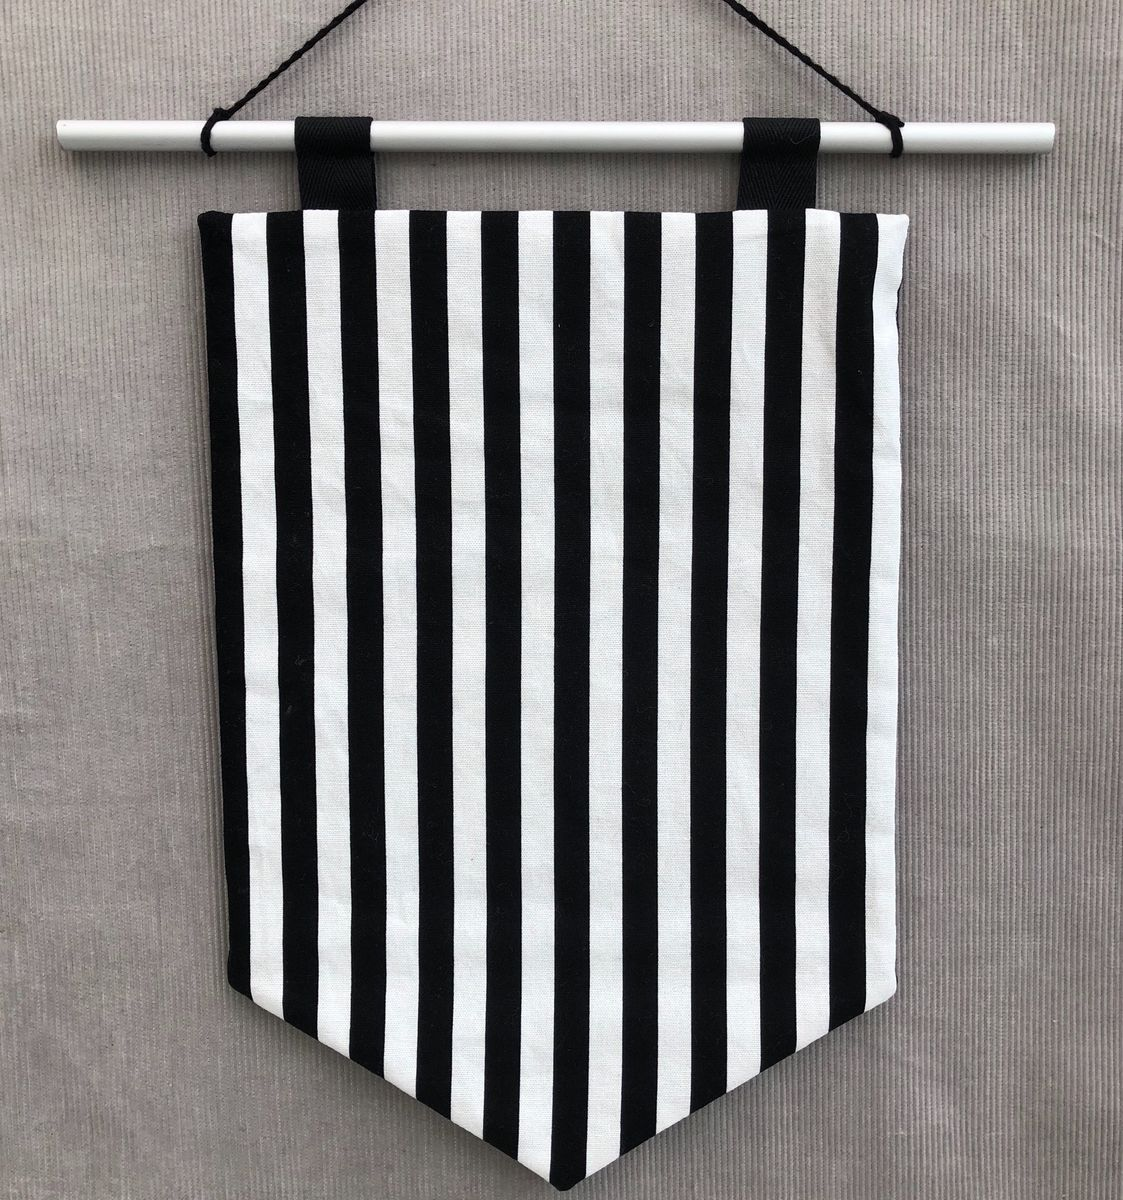 Decorative banner wall hanging - monochrome - product images  of